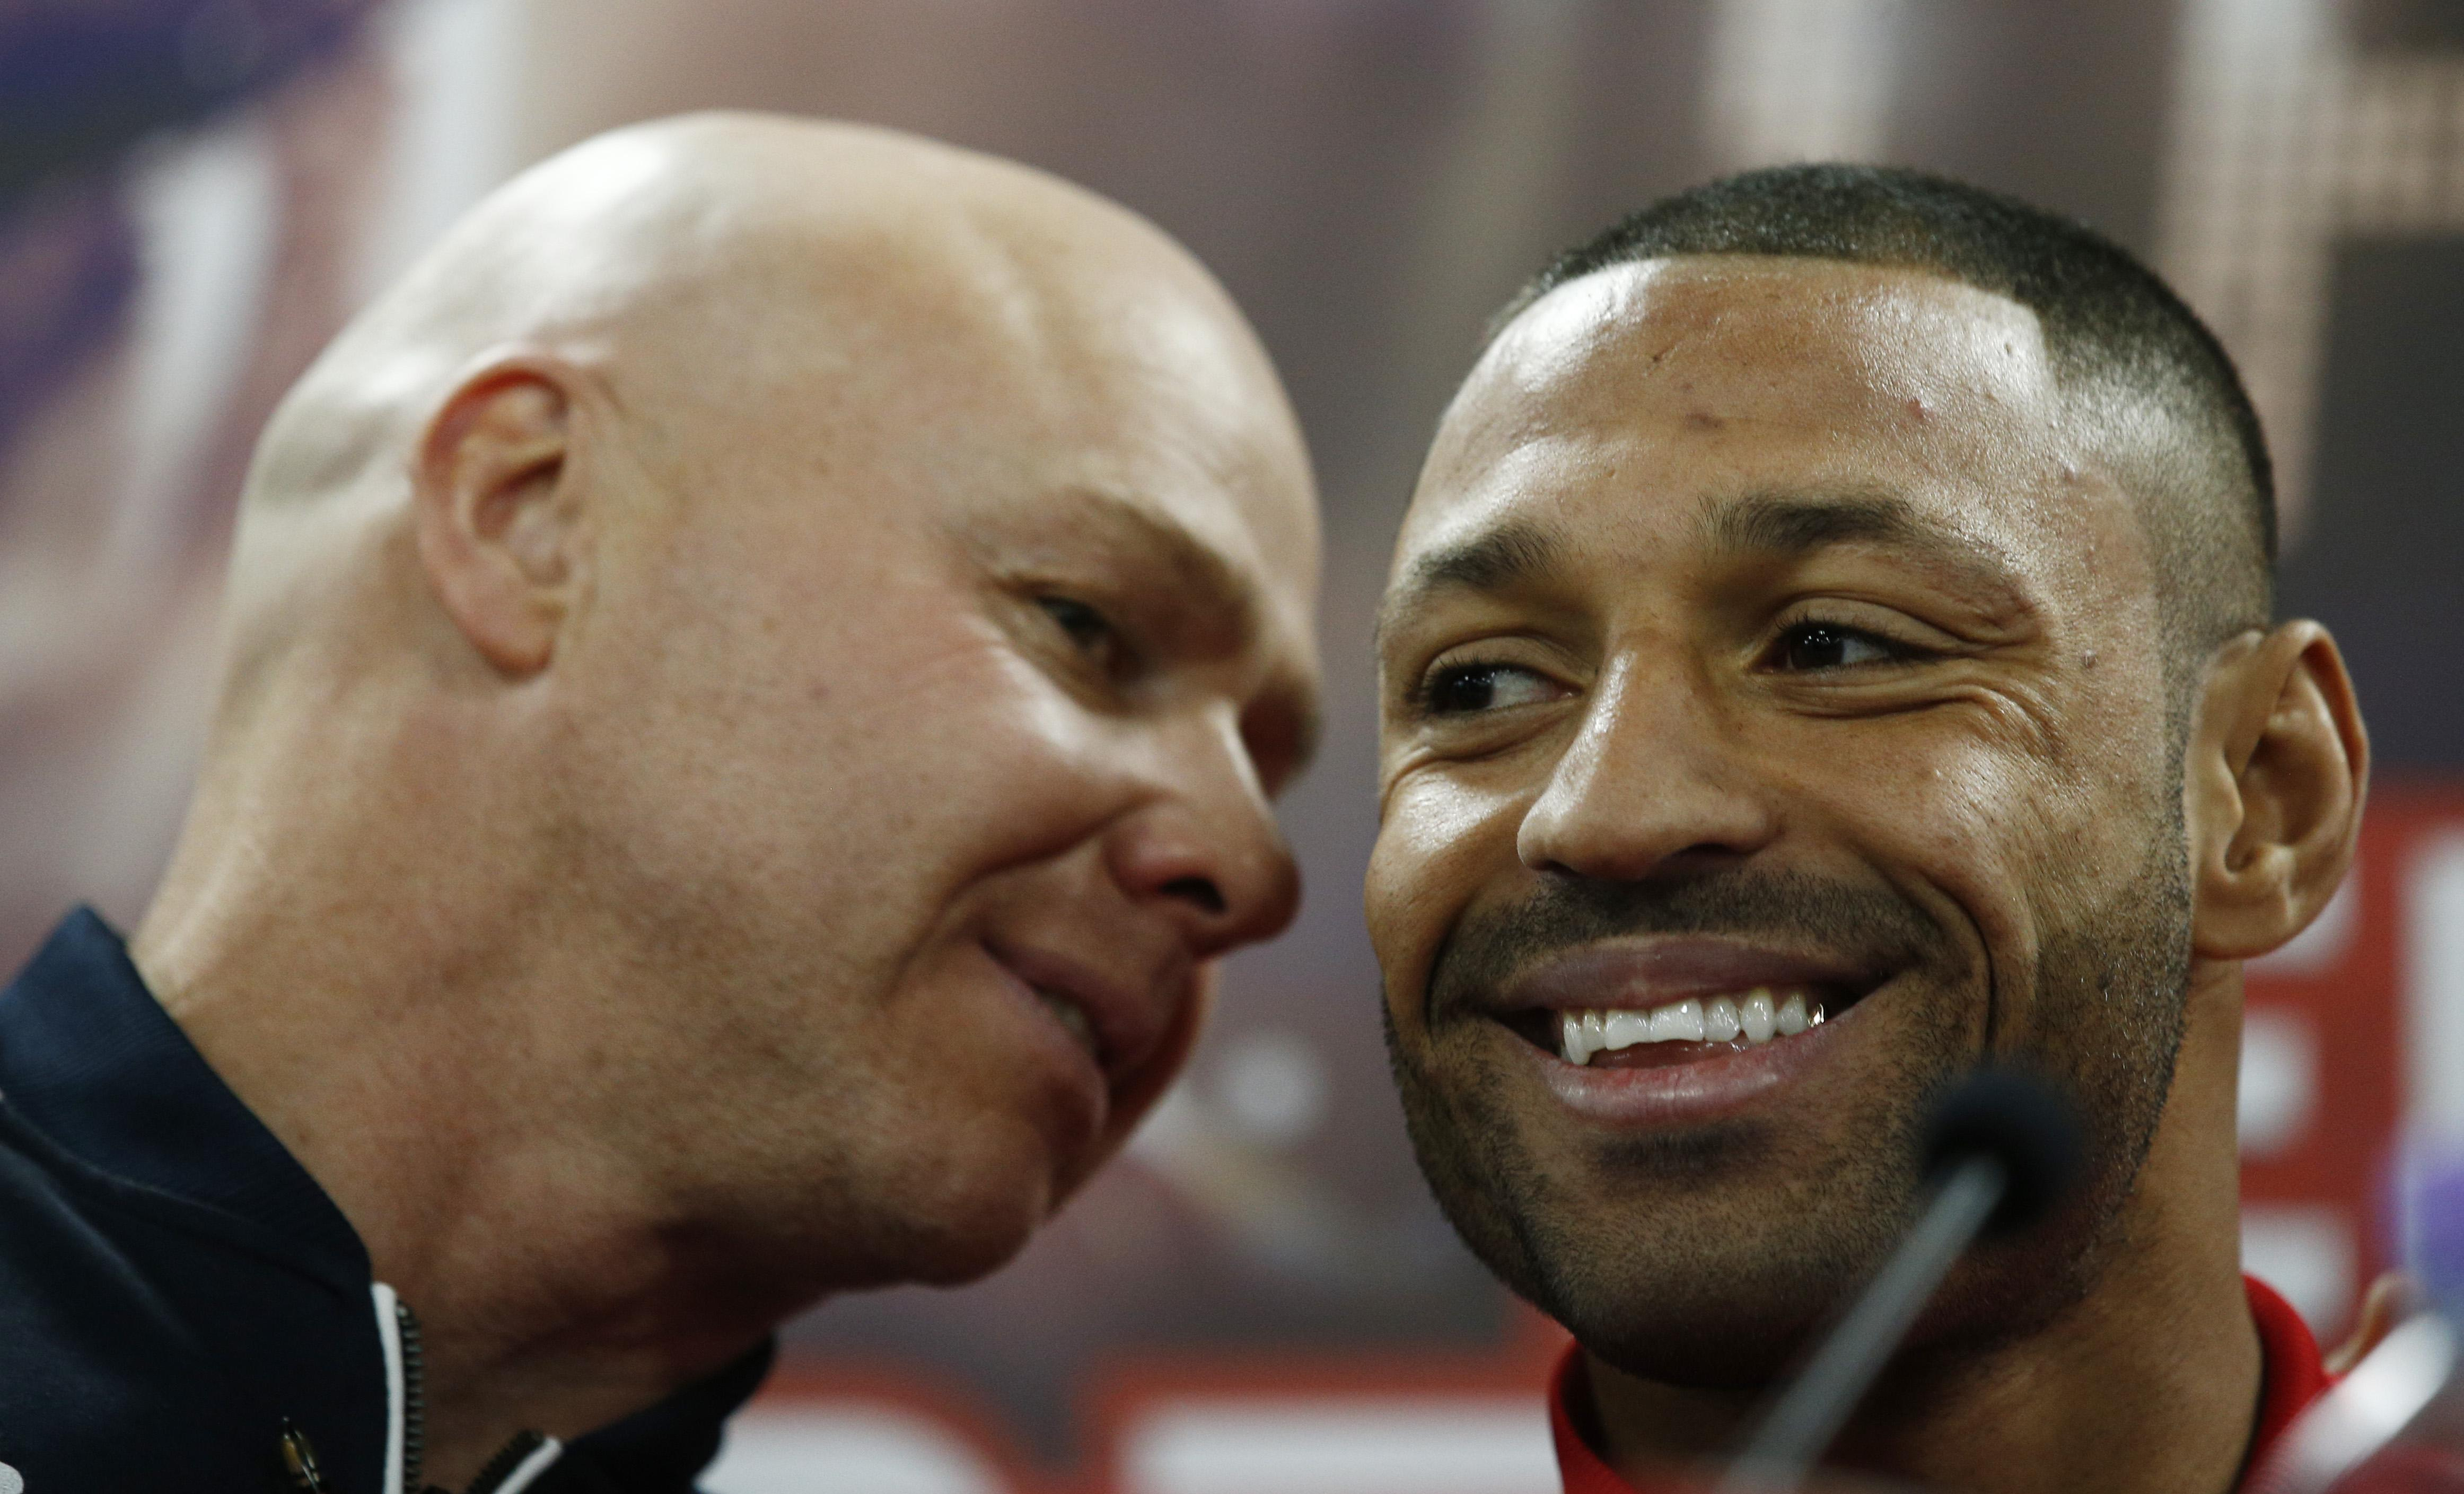 Dominic Ingle and Kell Brook seemed a very close team